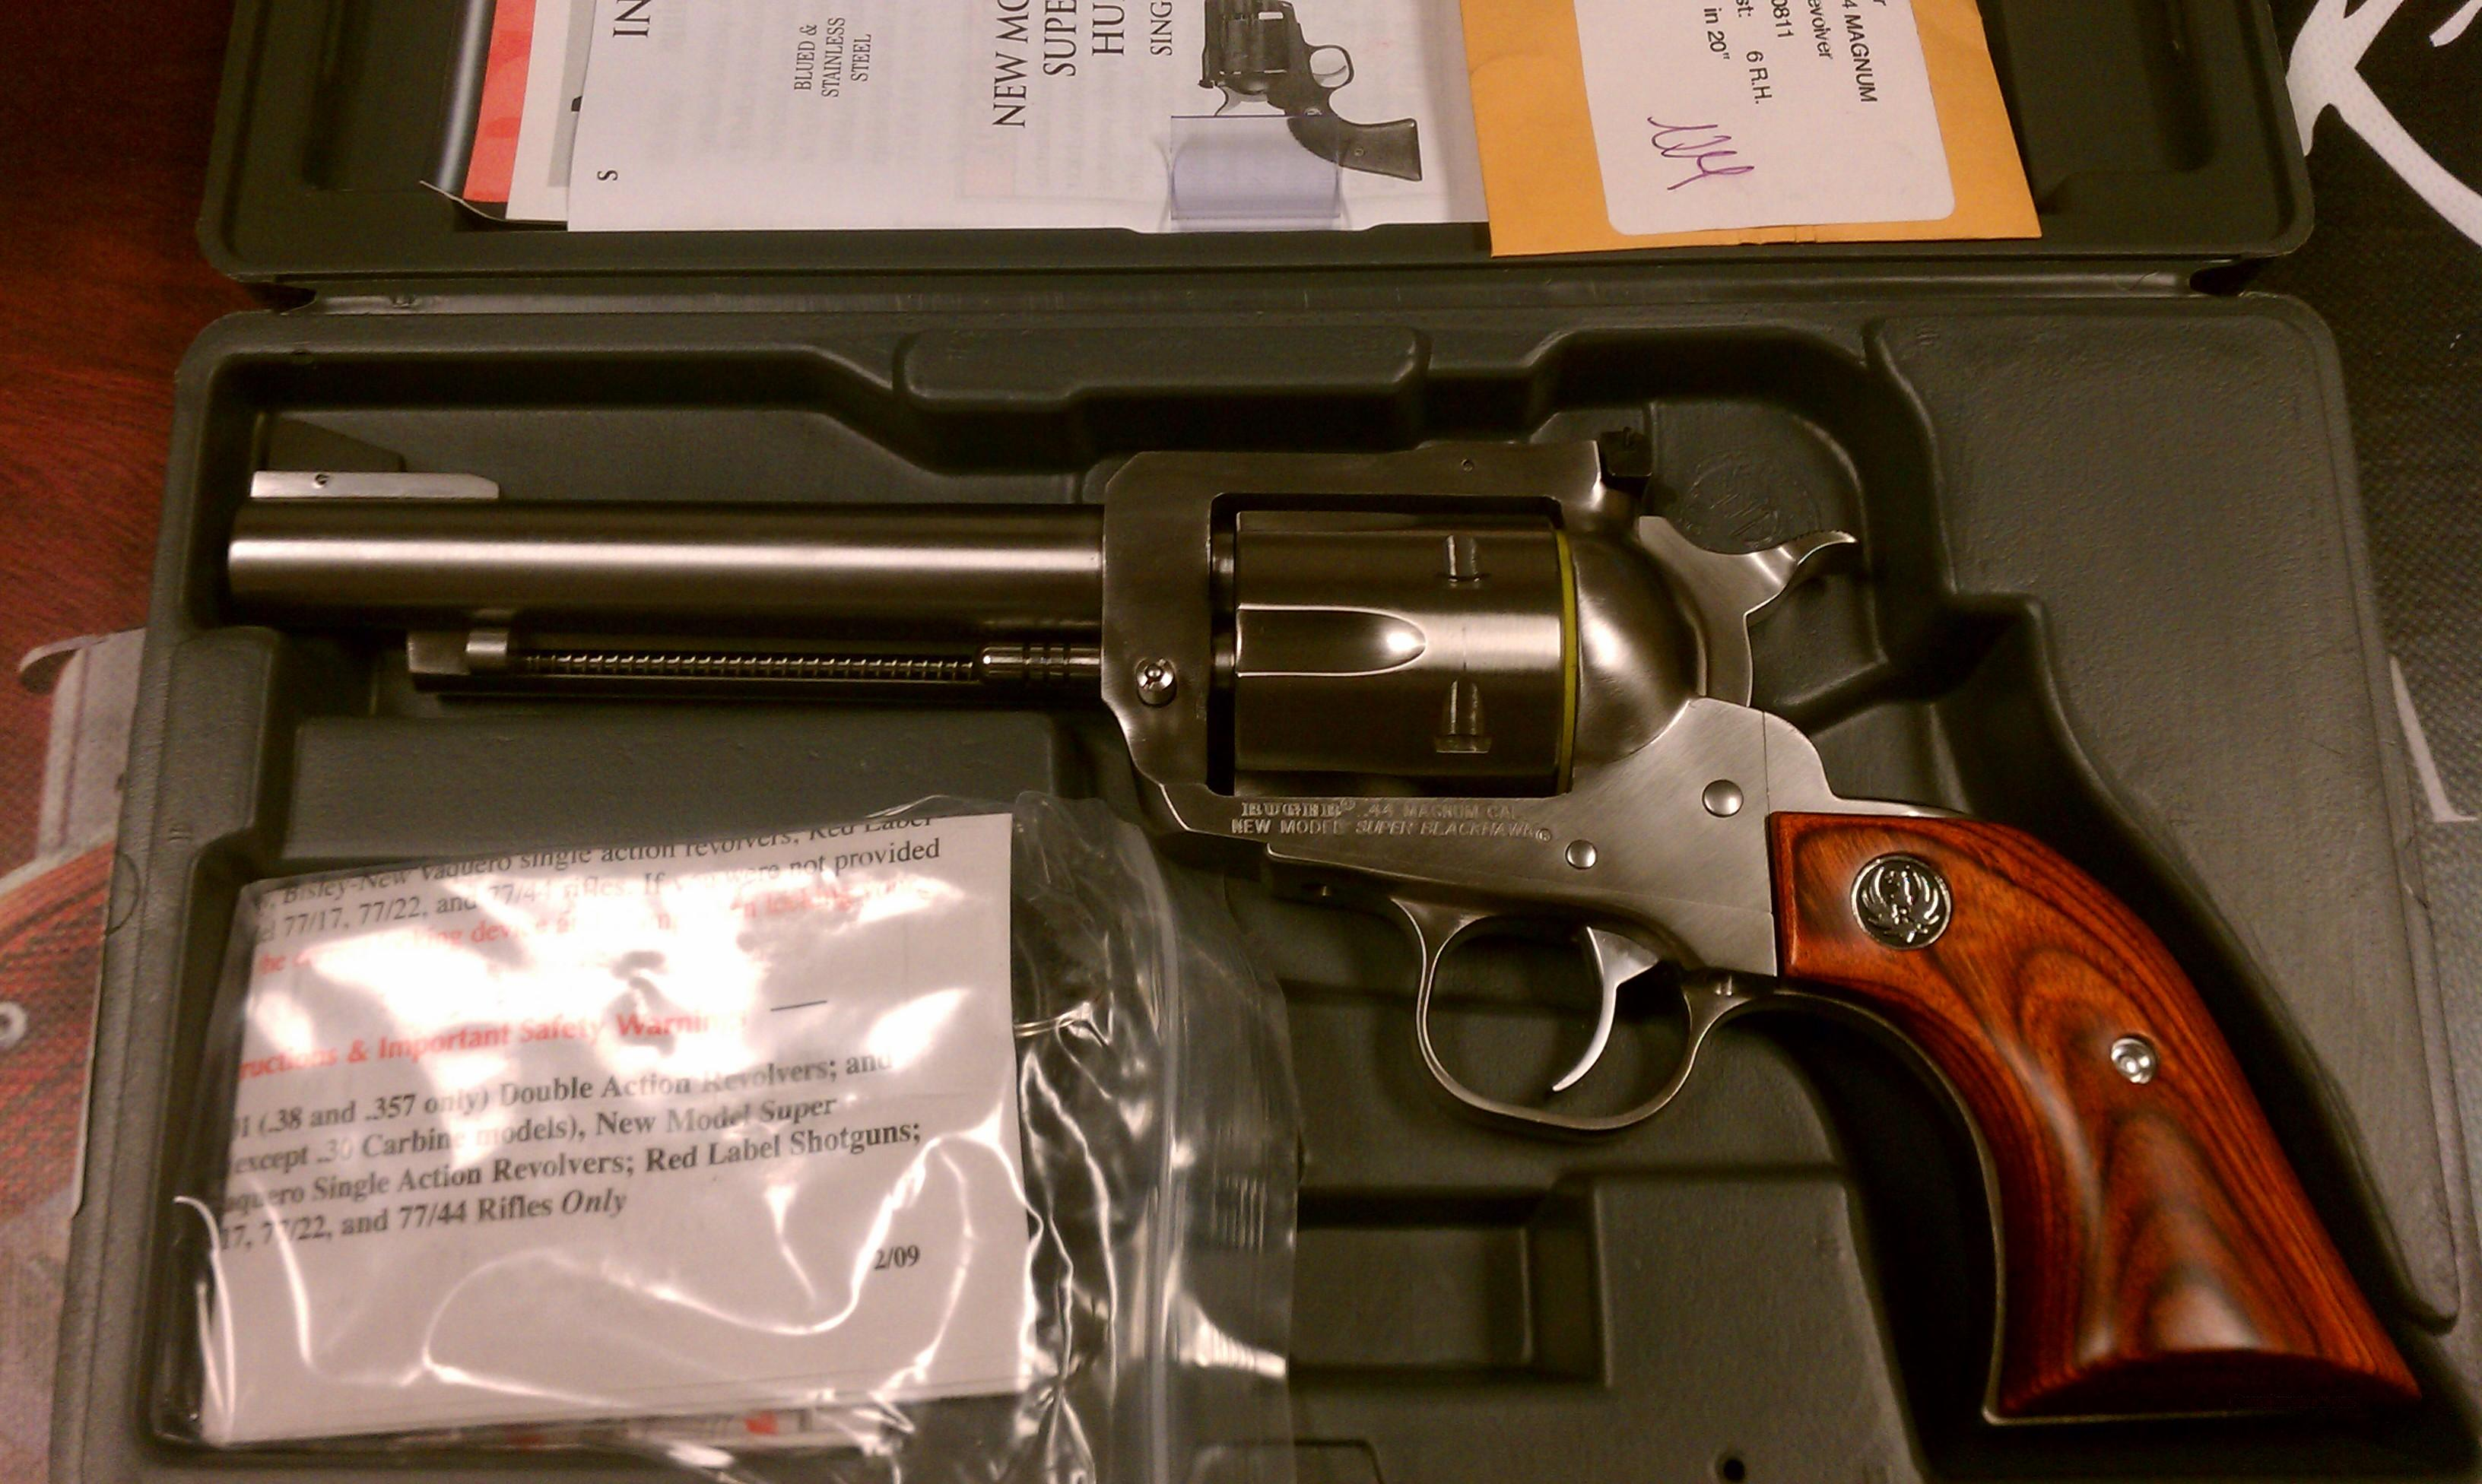 Ruger Super Blackhawk 44mag 5.5SS  Guns > Pistols > Ruger Single Action Revolvers > Blackhawk Type